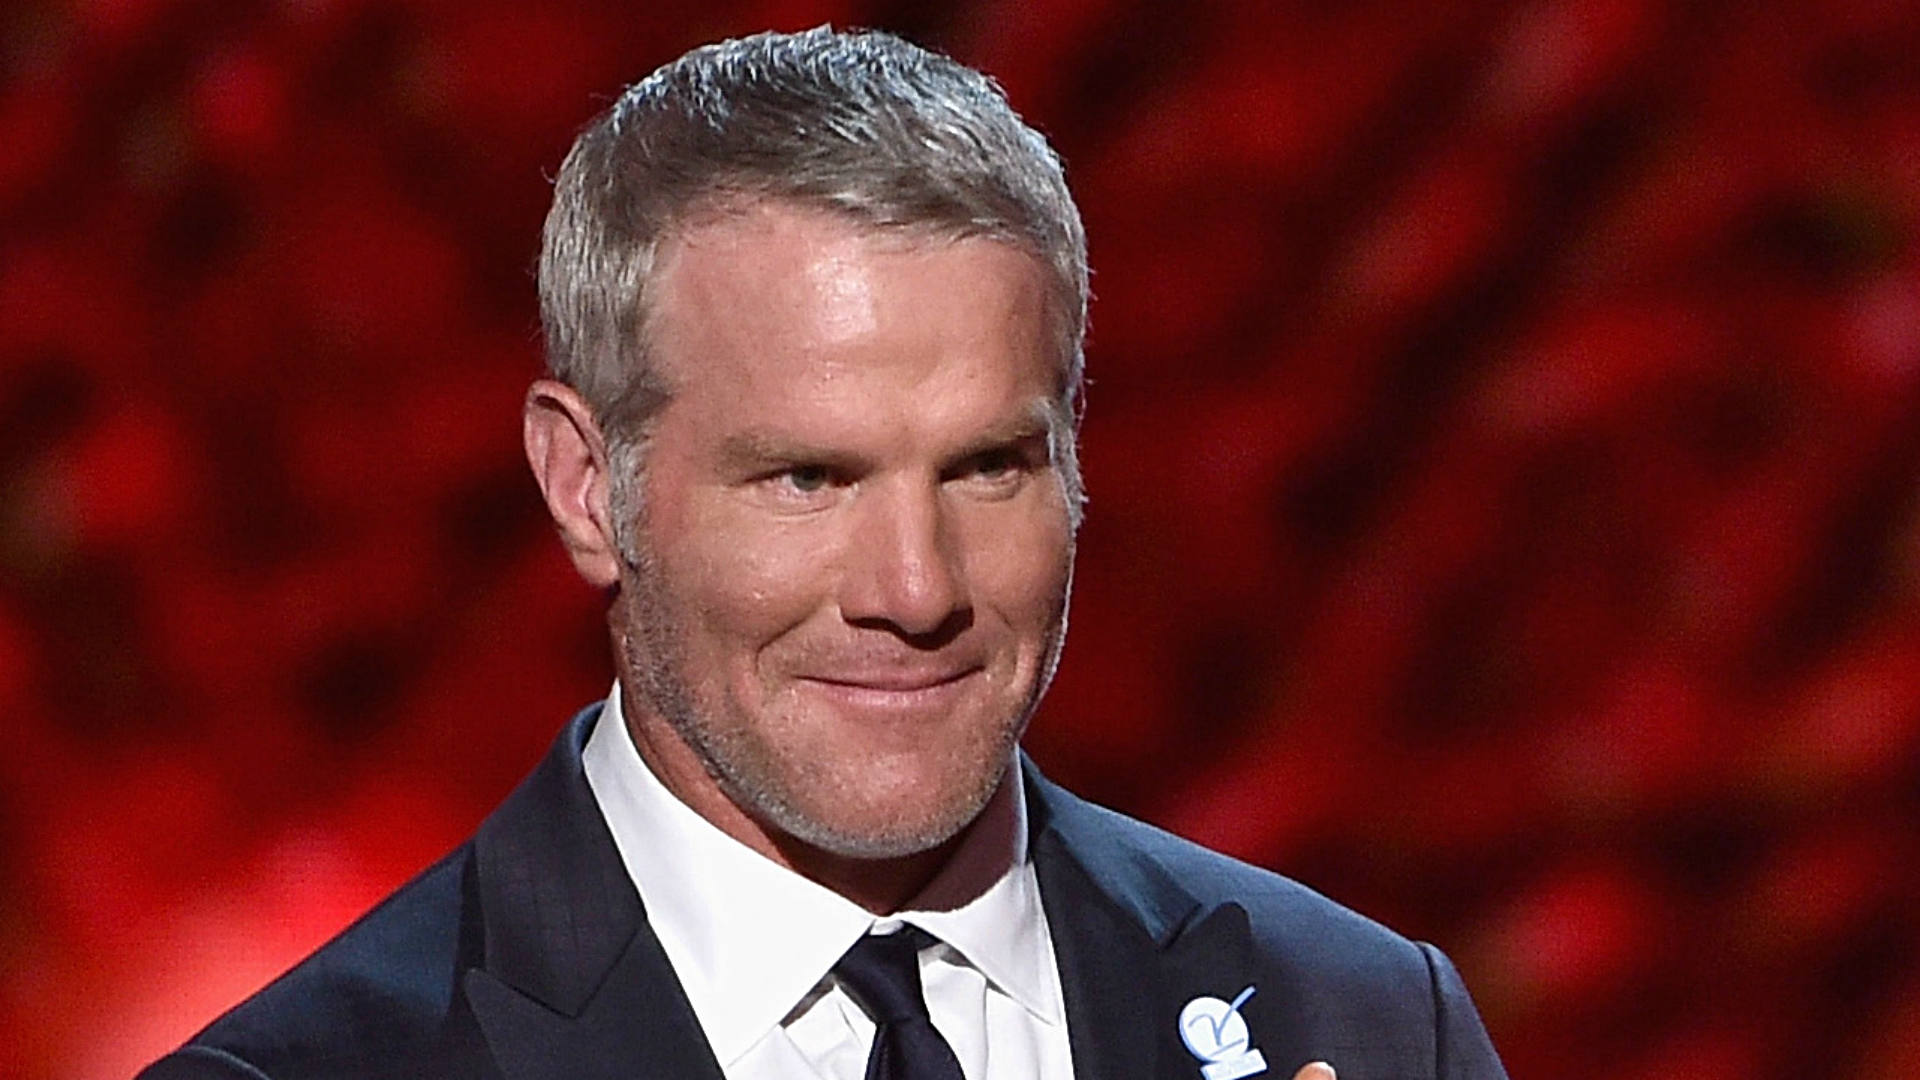 """Brett Favre says he wants politics outside of sport – kneeling in the anthem has created """"more fuss"""""""